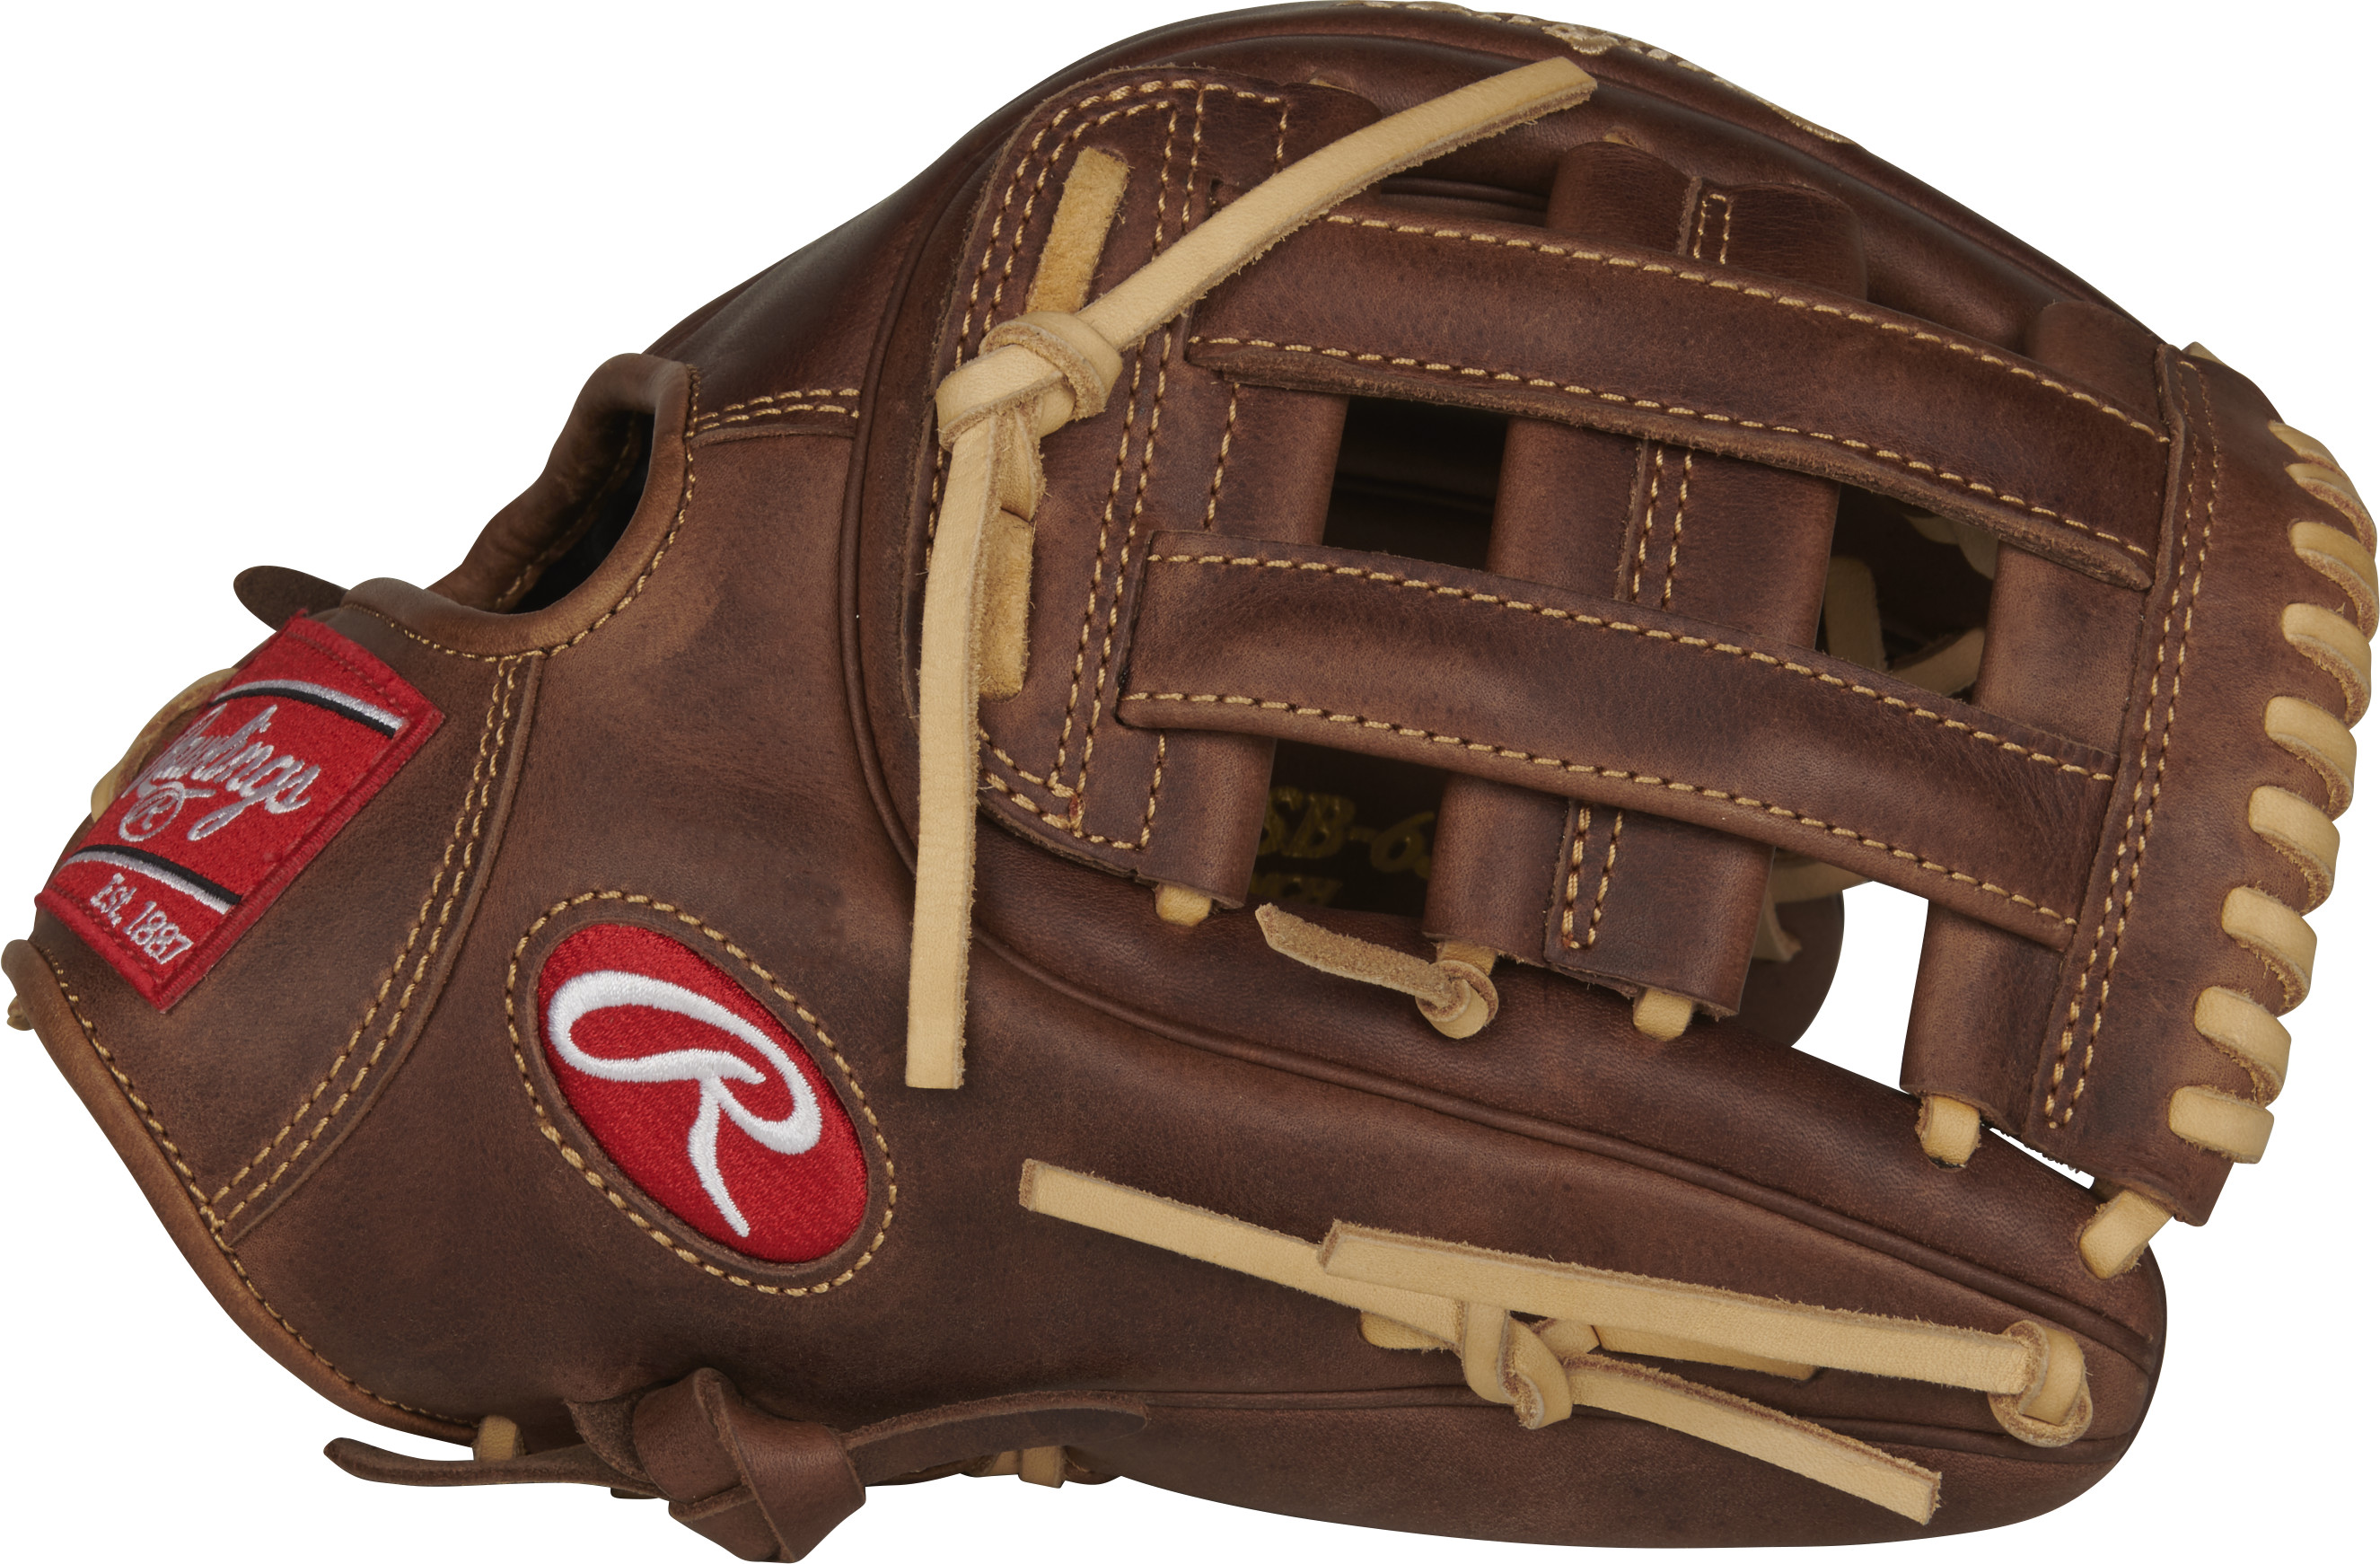 http://www.bestbatdeals.com/images/gloves/rawlings/PRO315SB-6SL-3.jpg